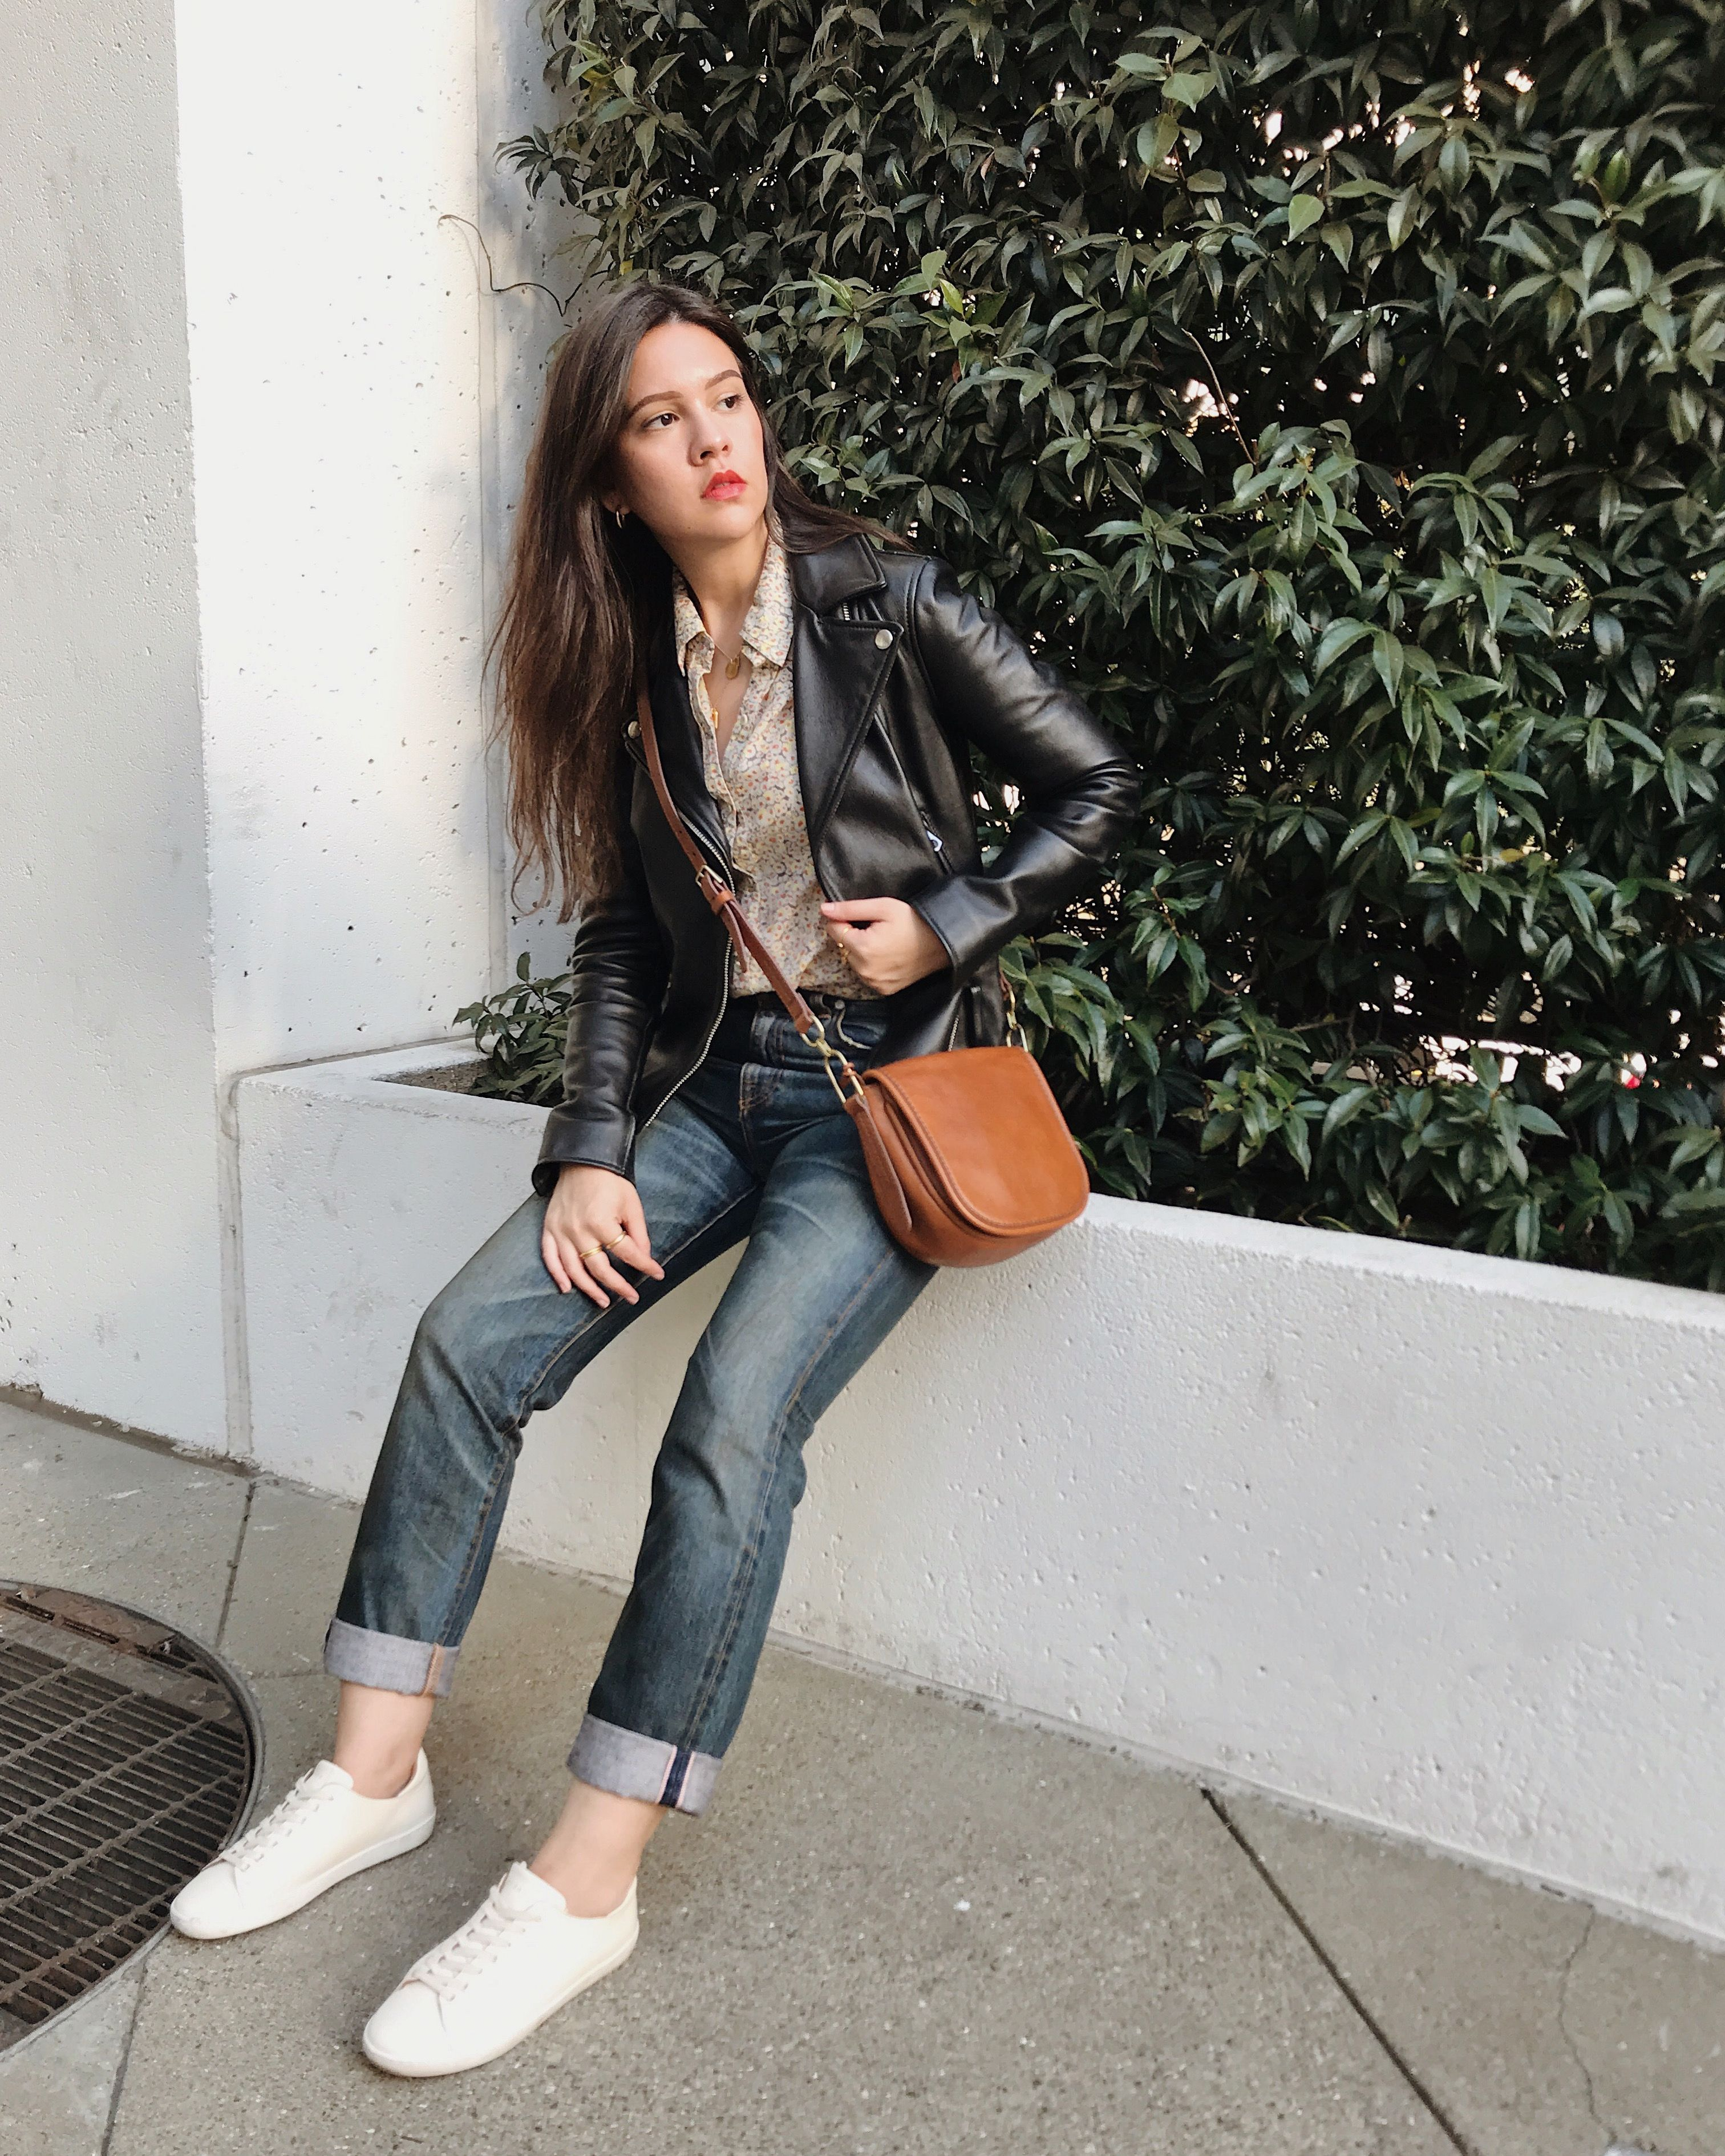 Madewell Leather Jacket And Jewelry Sezane Sneakers Fossil Purse Cqy Denim Jeans Hinge Blouse [ 3780 x 3024 Pixel ]